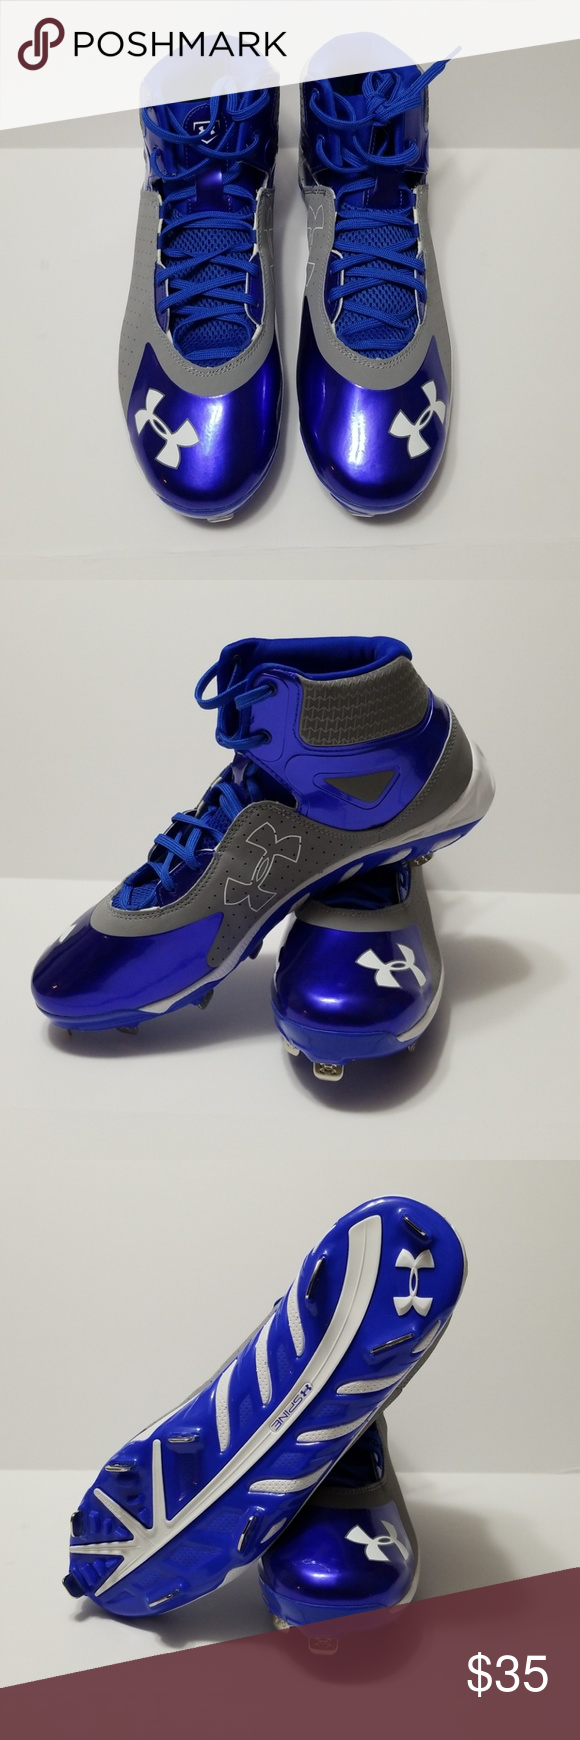 Under Armour Clutchfit Spine Metal Baseball Cleats Nwt